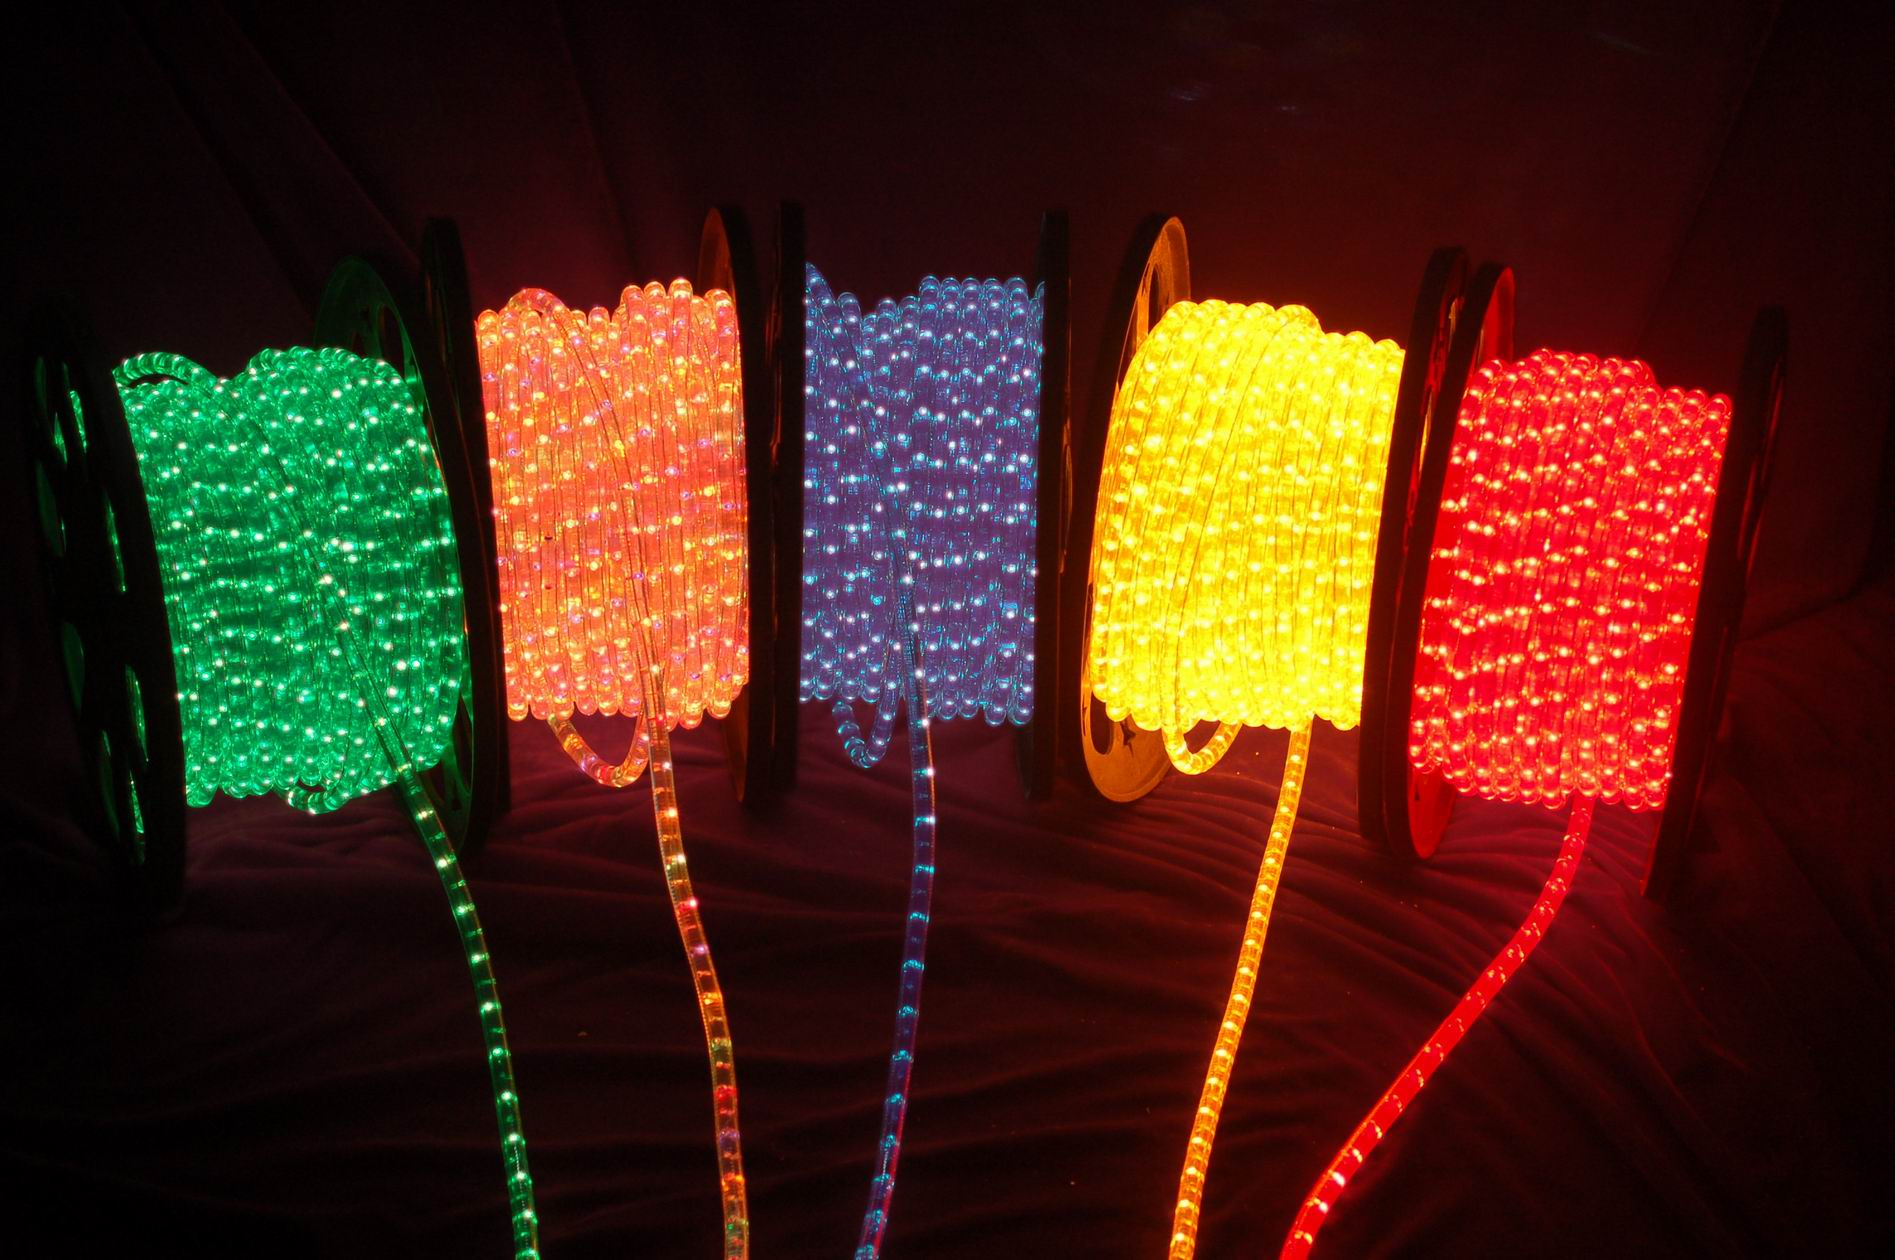 Rope Lights SRR 3W  8 Stunning Photos of LED Rope Light Applications